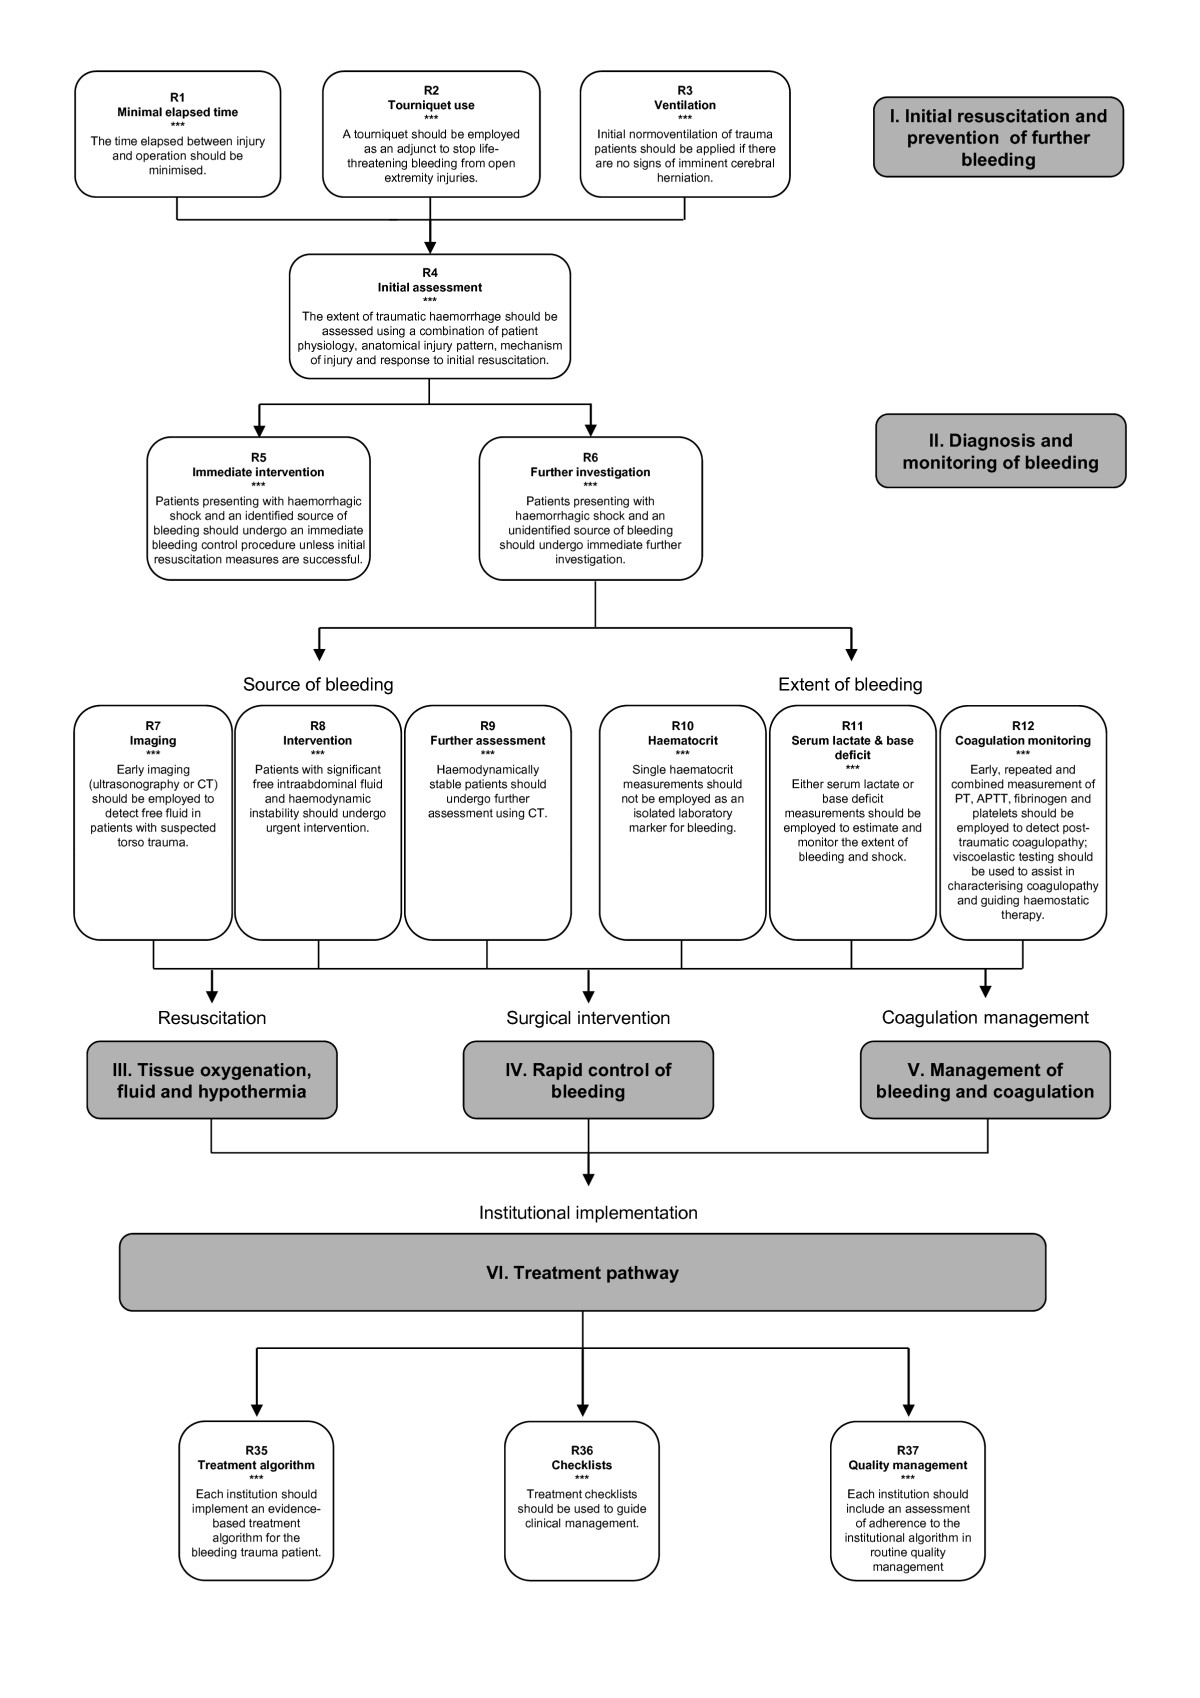 Management of bleeding and coagulopathy following major trauma an open image in new window fandeluxe Image collections